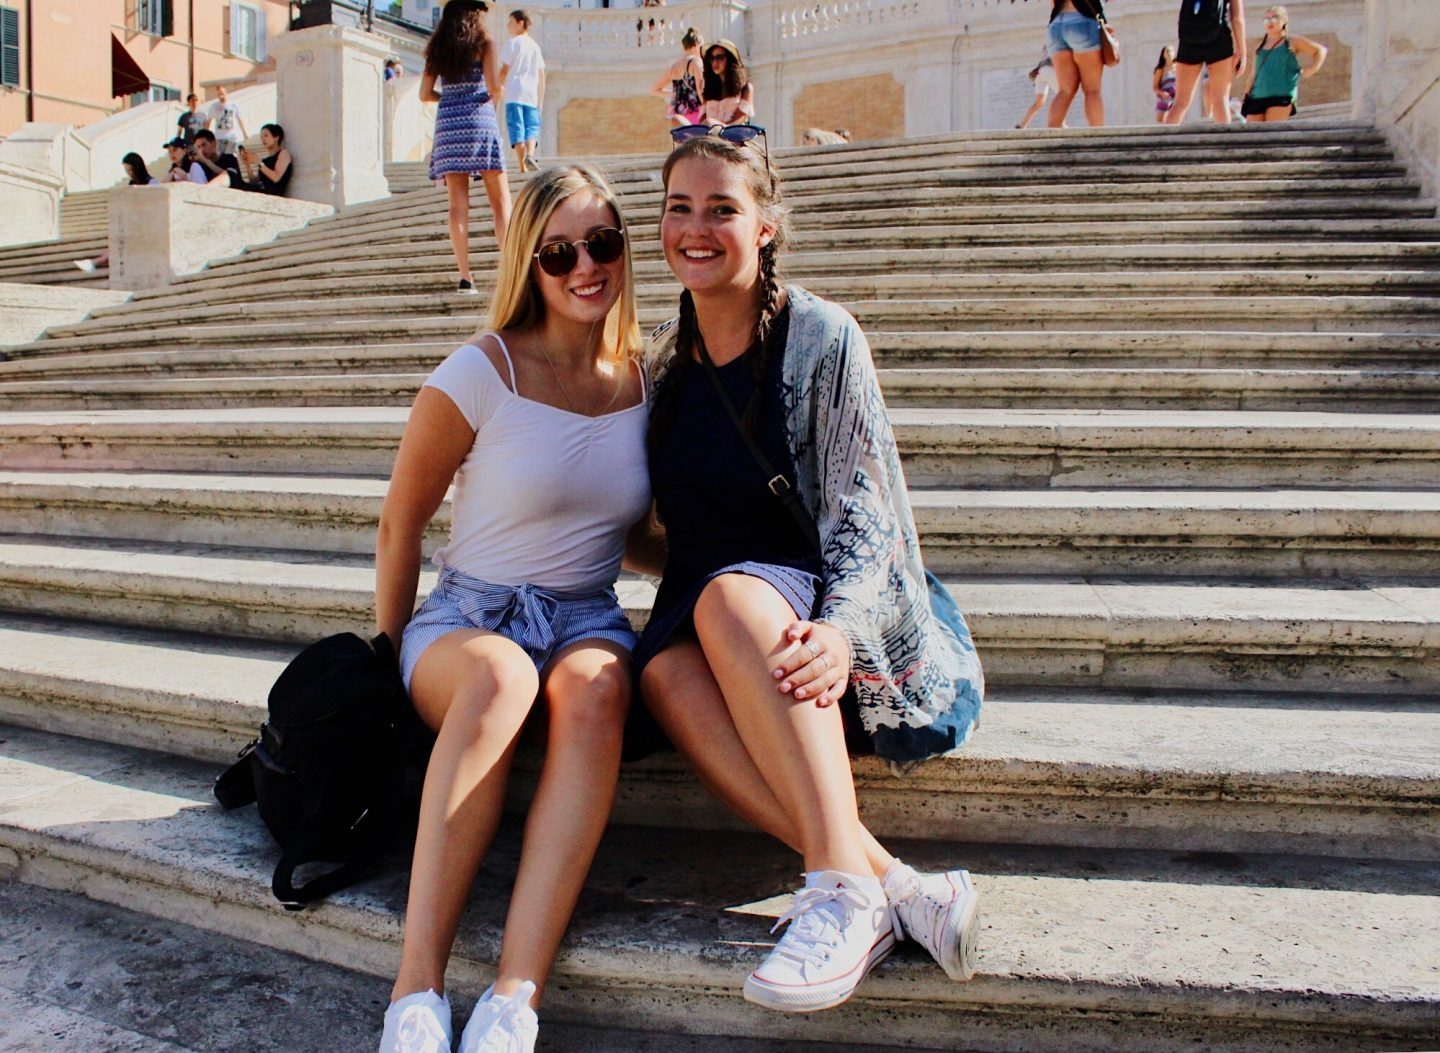 Sitting on the Spanish stairs during our one day in Rome